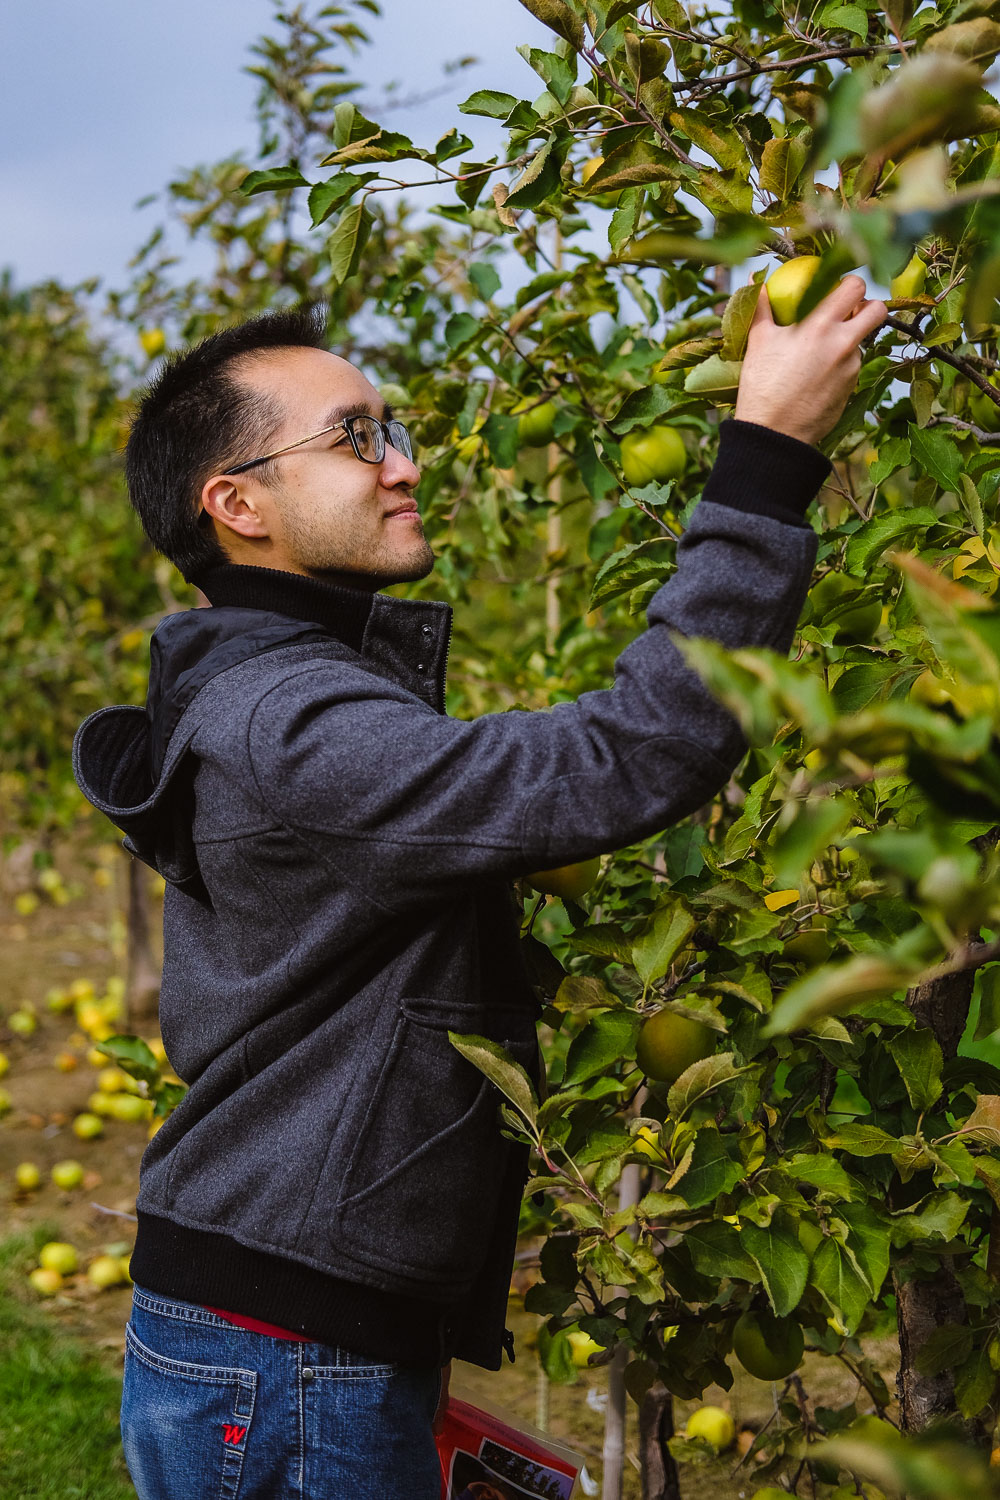 Picking some Mutsu apples in the orchard